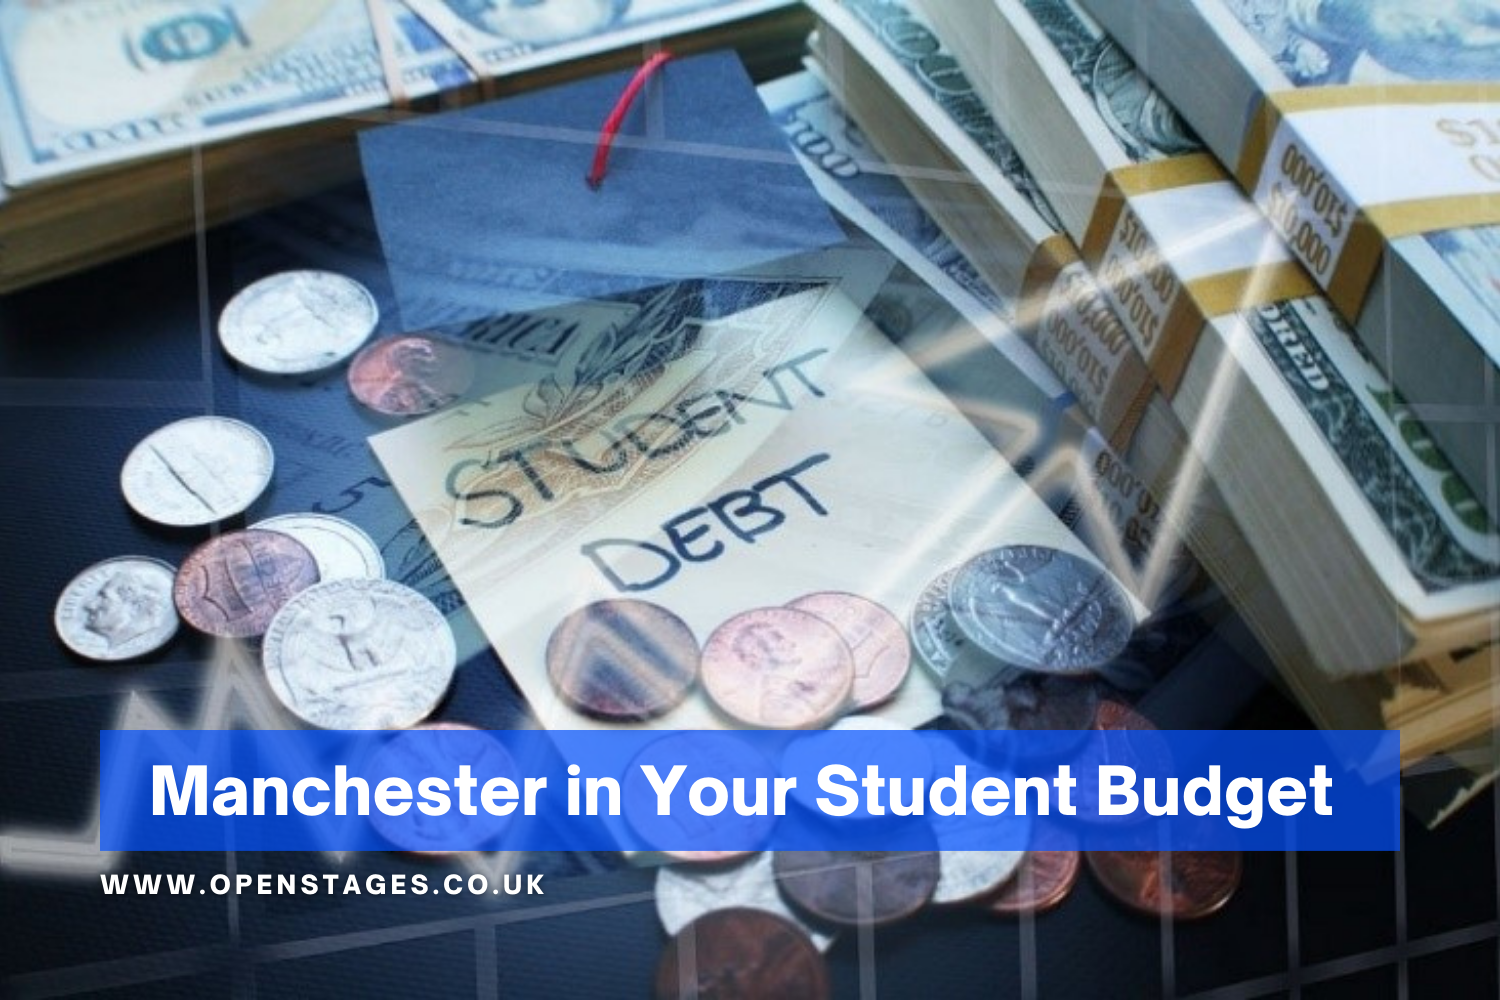 How to Fit Manchester in Your Student Budget?